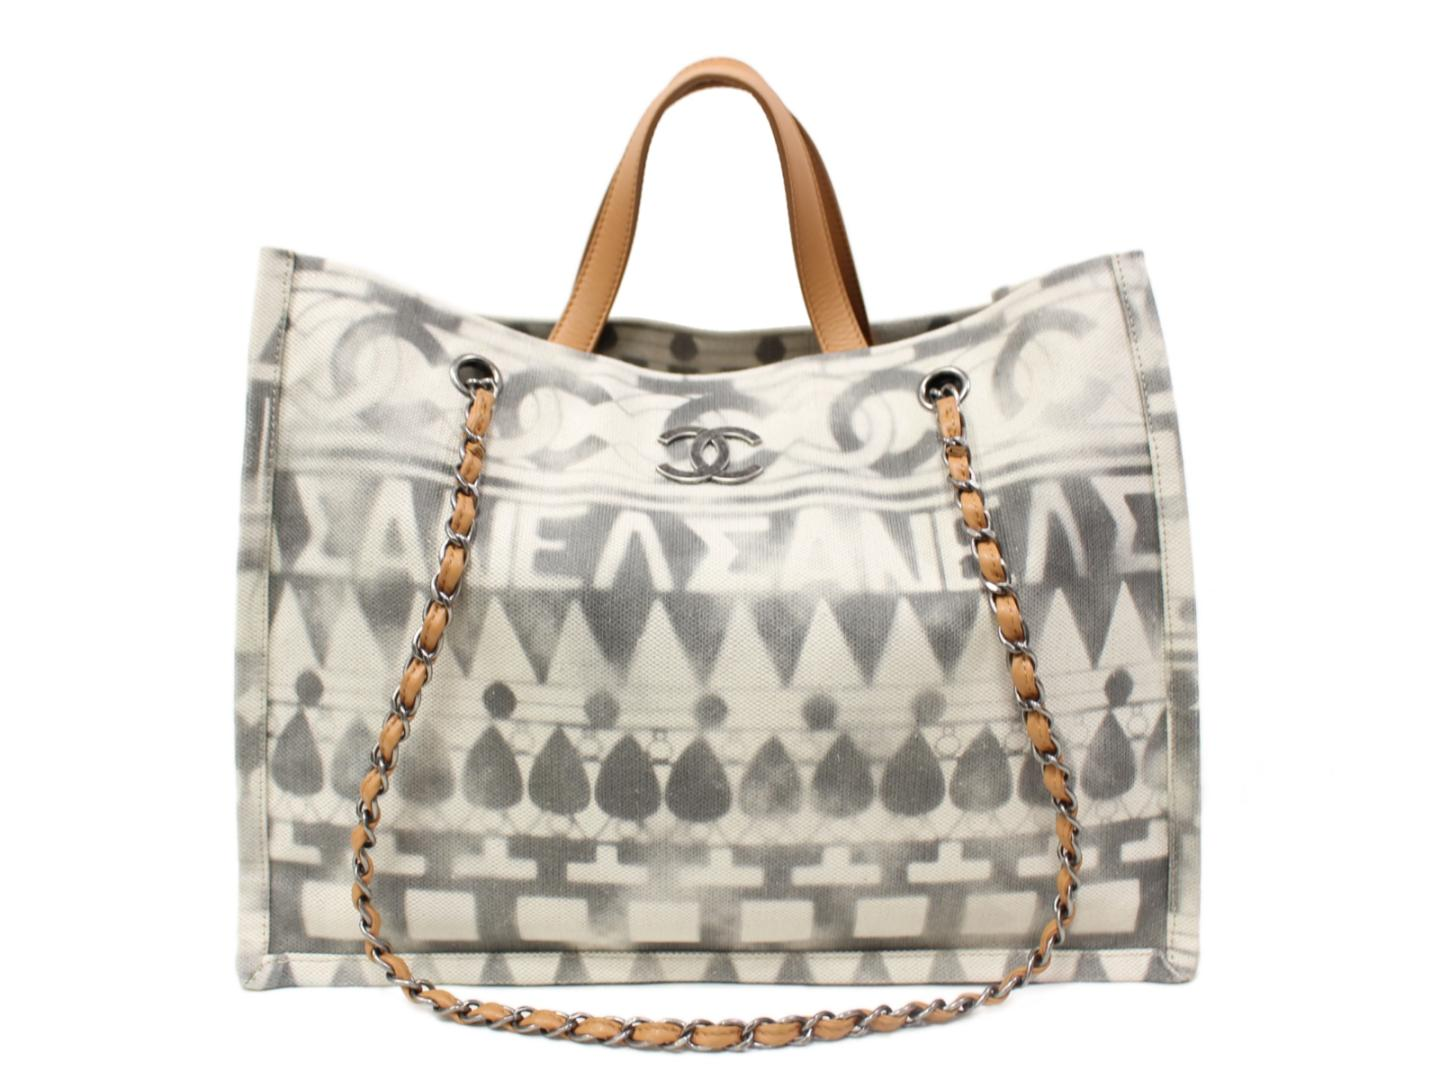 b6b2e90f6 Auth CHANEL 2way Shoulder Tote Bag Canvas x Leather White Used Vintage |  BRANDOFF Ginza/ ...